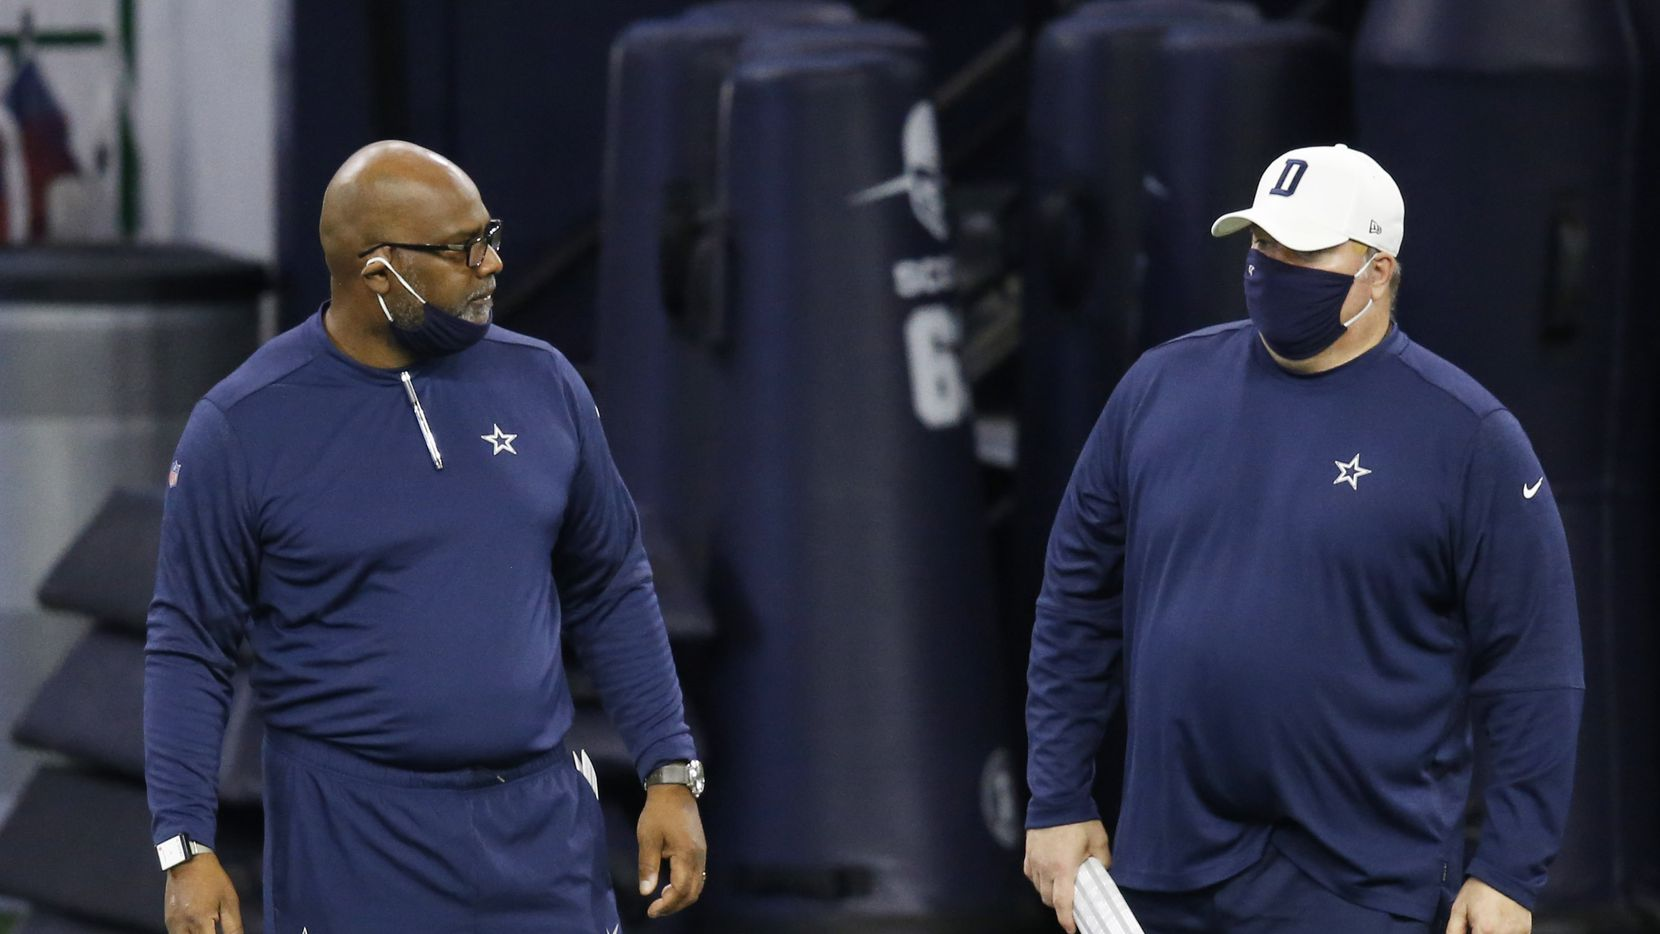 Dallas Cowboys assistant head coach Rob Davis talks with Dallas Cowboys head coach Mike McCarthy in practice during training camp at the Dallas Cowboys headquarters at The Star in Frisco, Texas on Thursday, August 27, 2020. (Vernon Bryant/The Dallas Morning News)